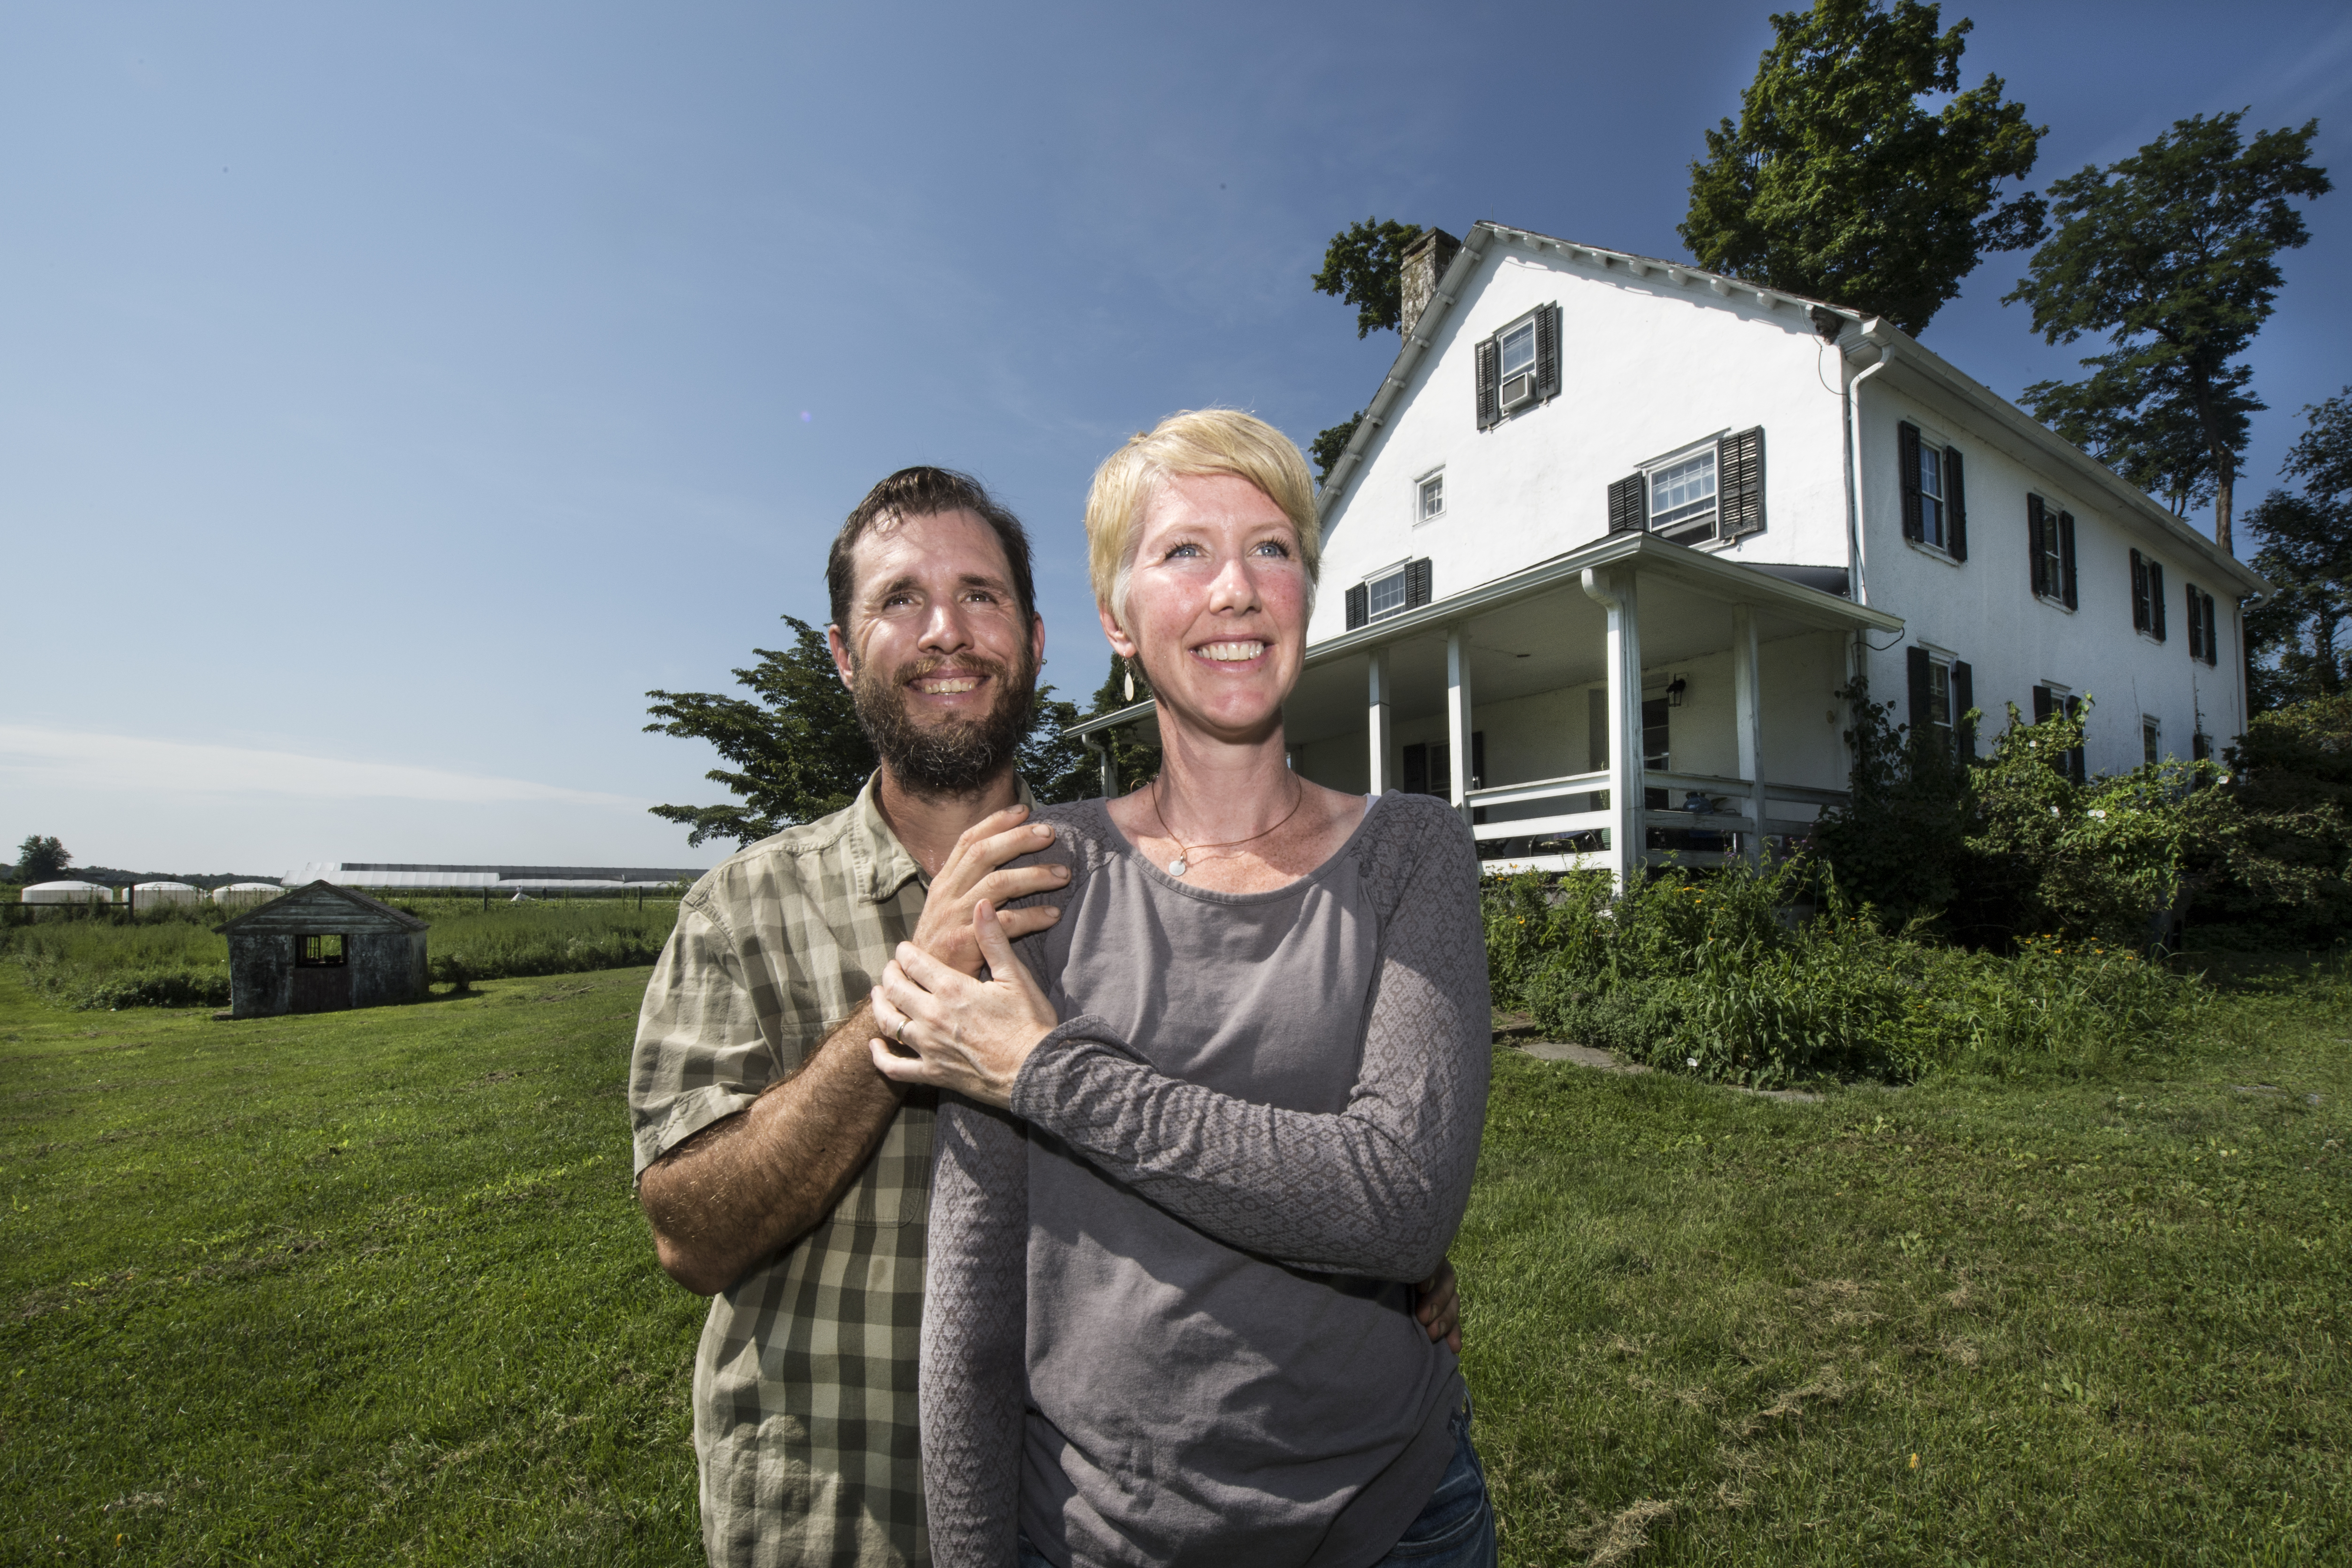 Deirdre Flemming and her husband, Trey Flemming, are photographed outside their home at the Two Gander Farm in Downingtown, Pa. Wednesday, August 8, 2018. The Flemmings operate Two Gander Farm owned by the Brandywine Conservancy, a Chadds Ford-based land trust.